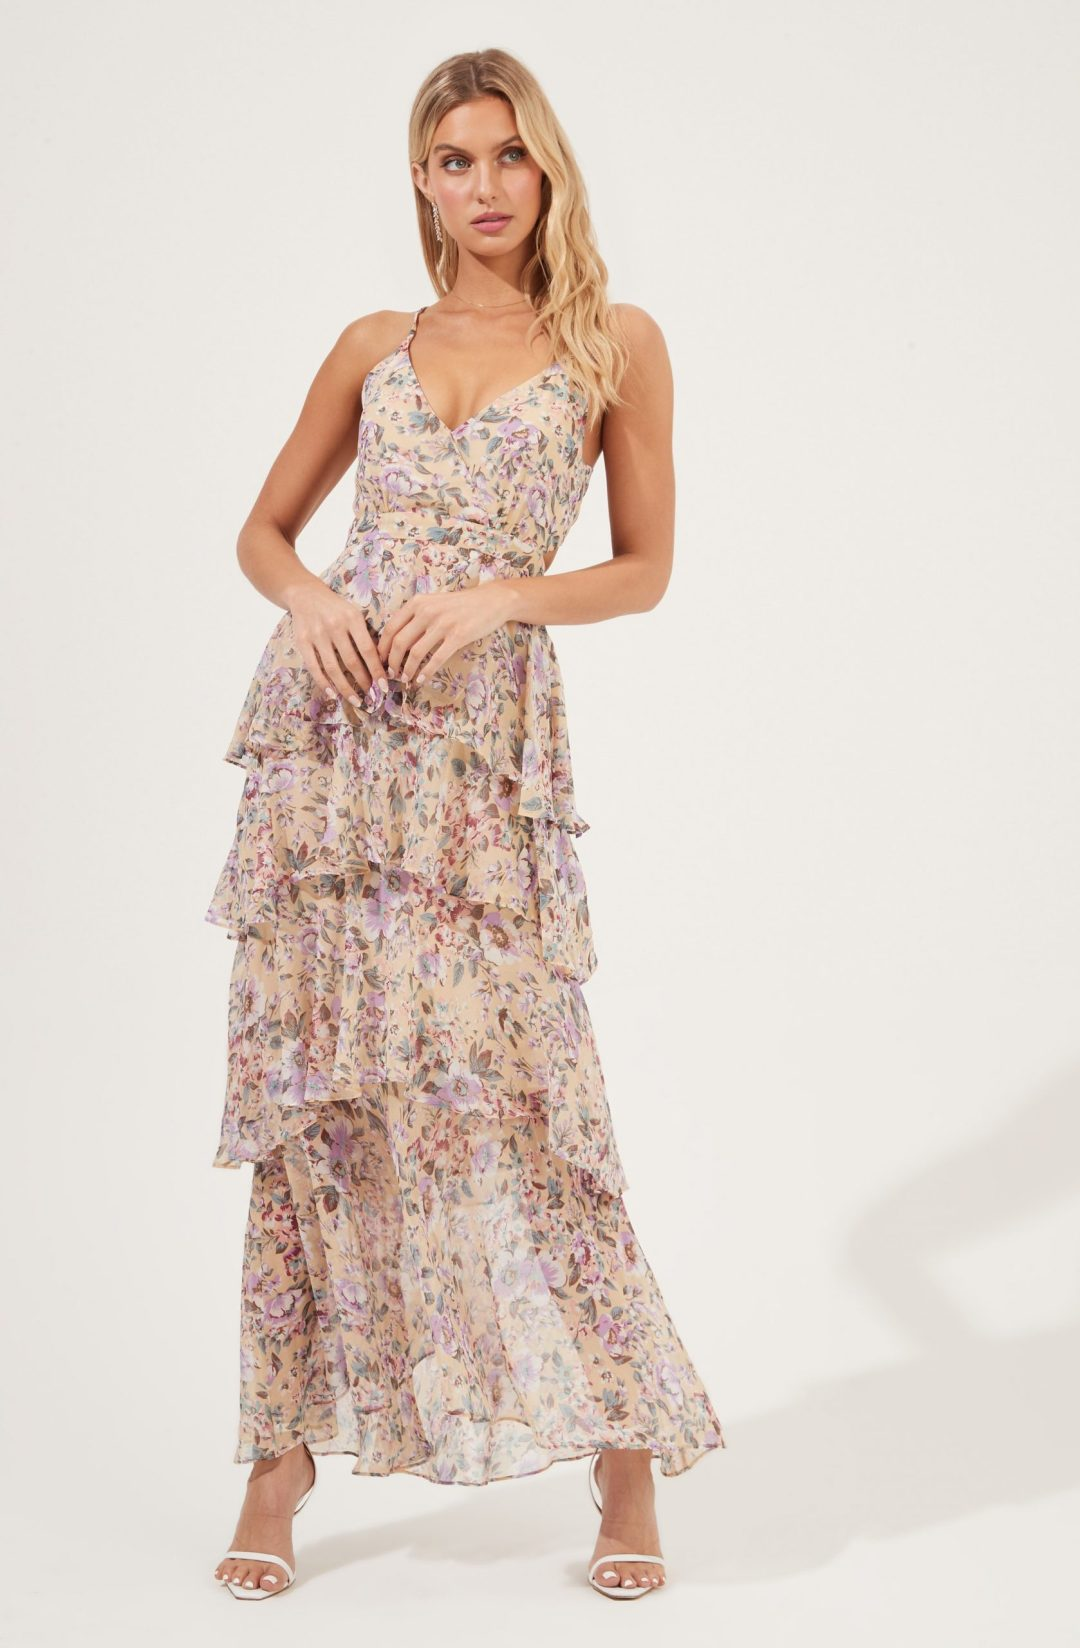 Floral ruffled layer maxi dress fordate night dresses